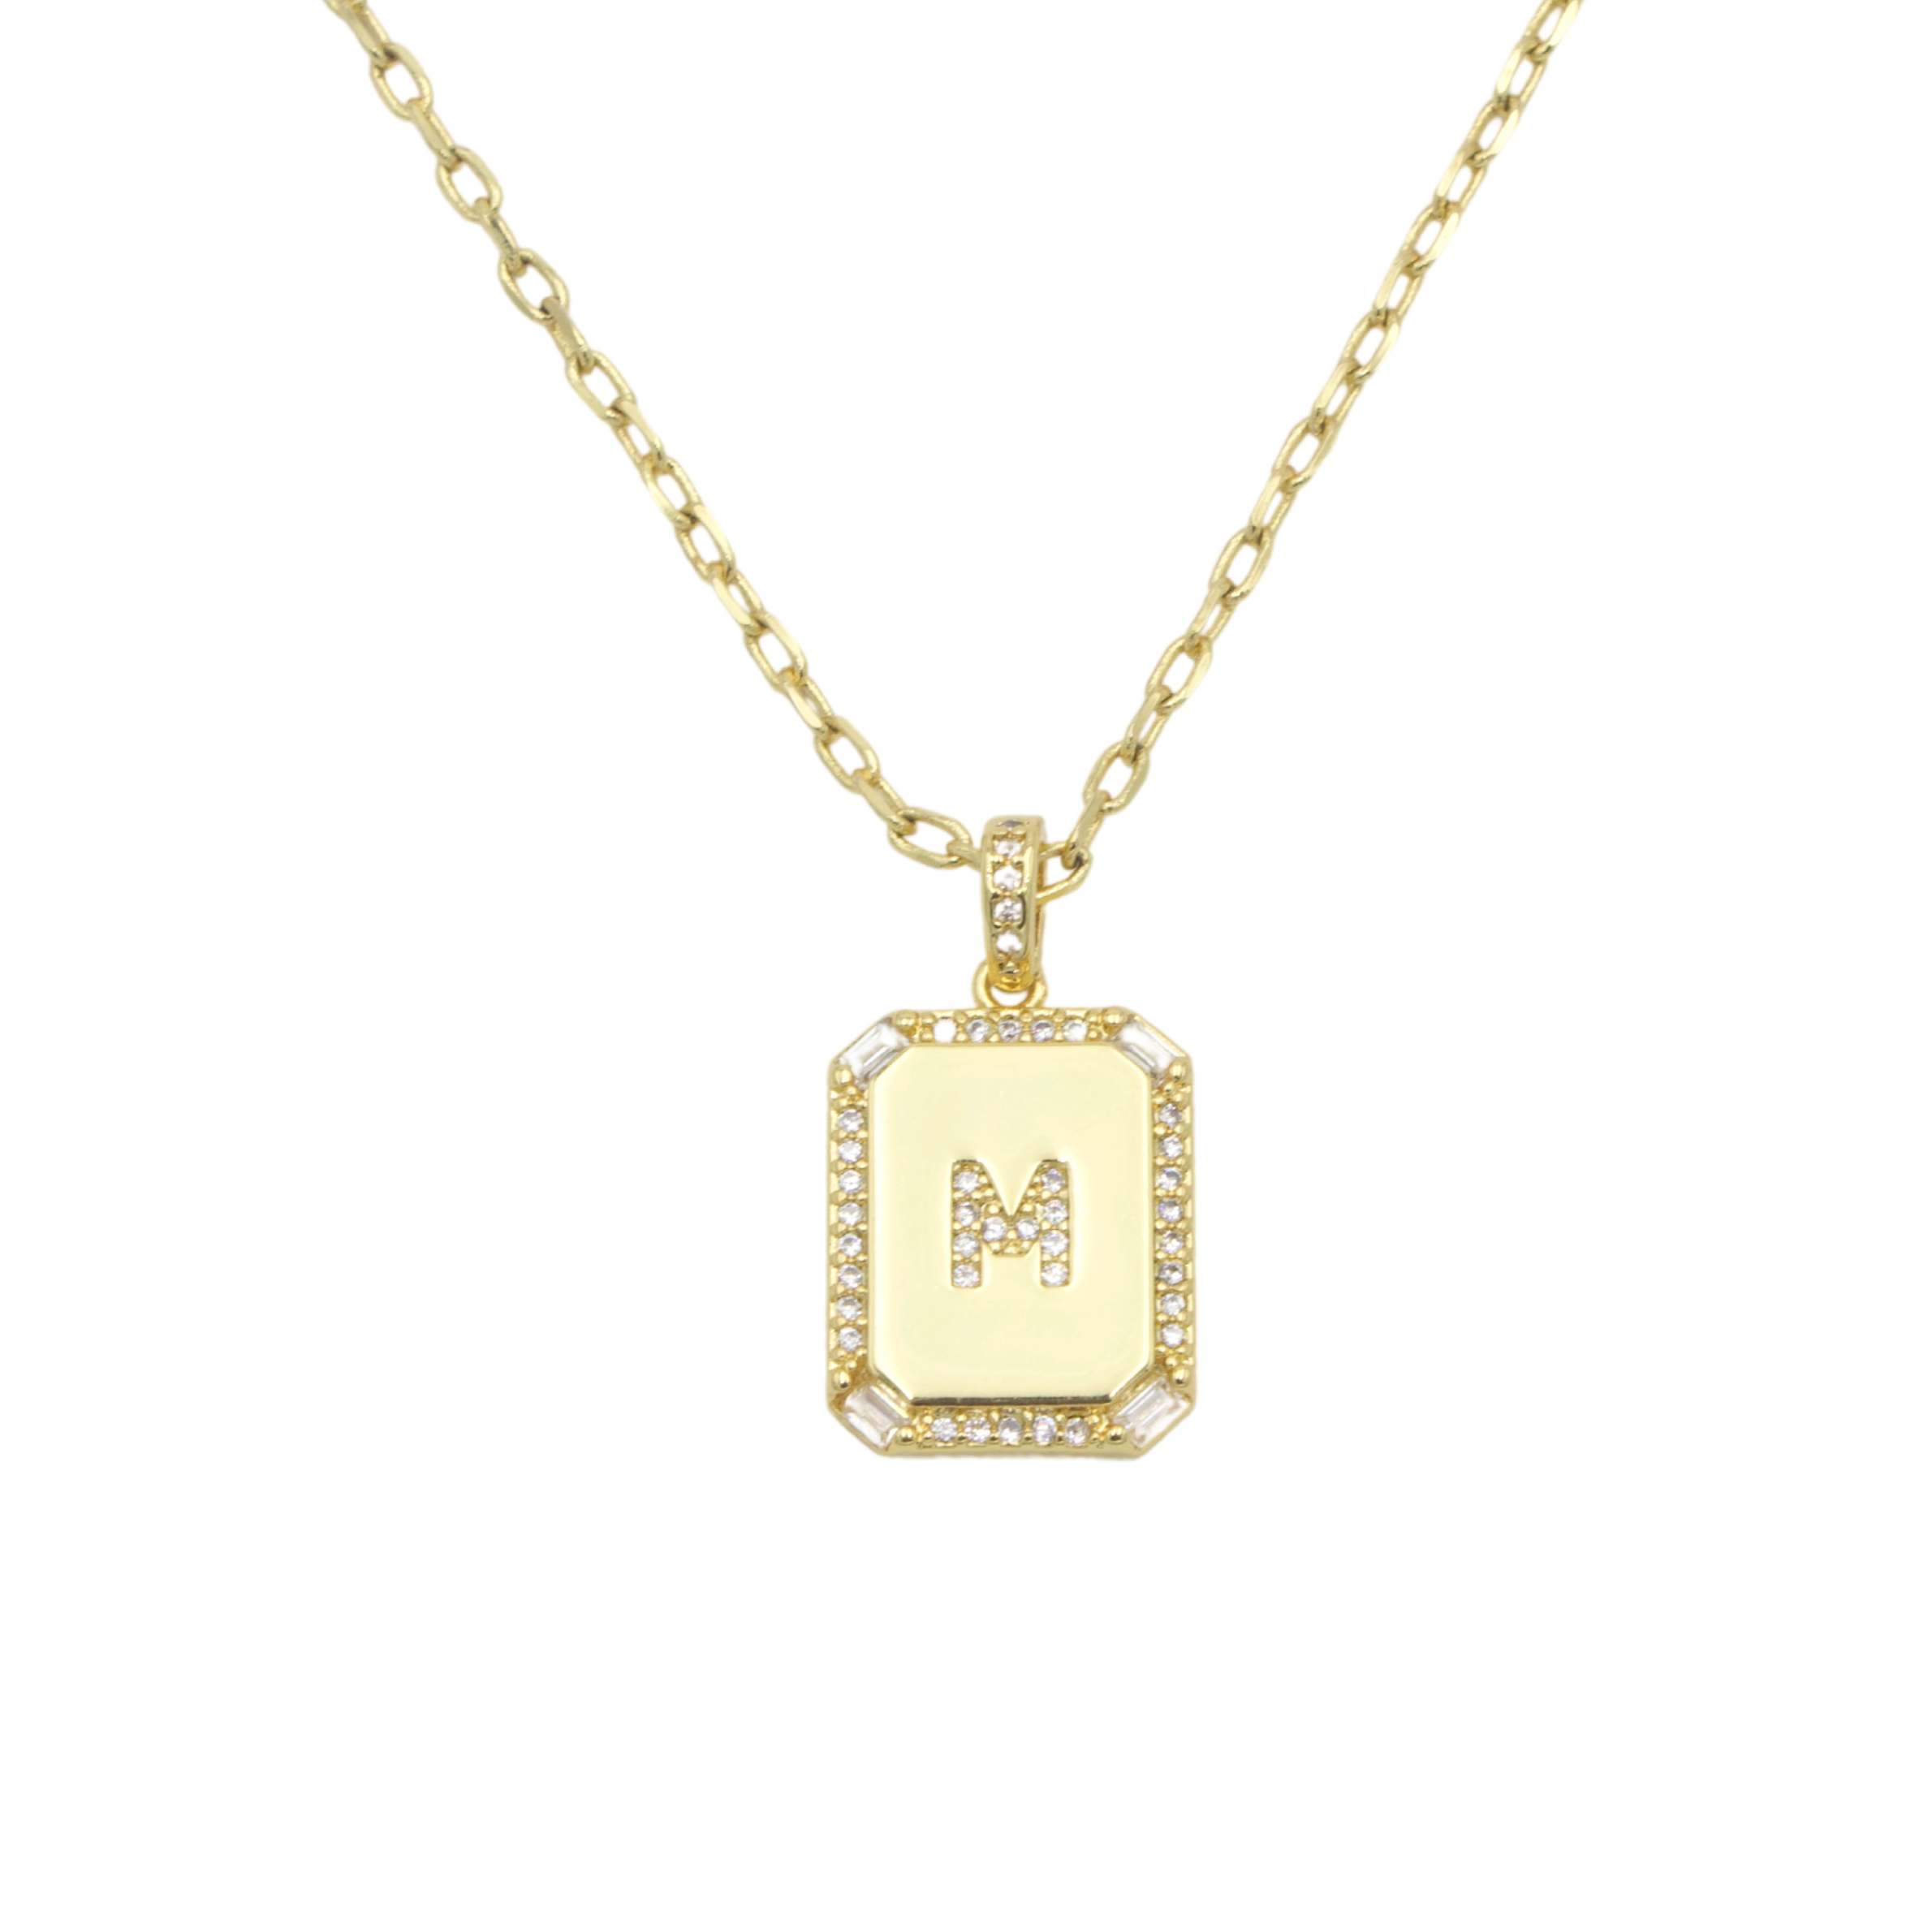 AW Boutique's gold filled 16 inch cable chain necklace finished with a dainty initial pendant with cubic zirconia detail. M initial shown.